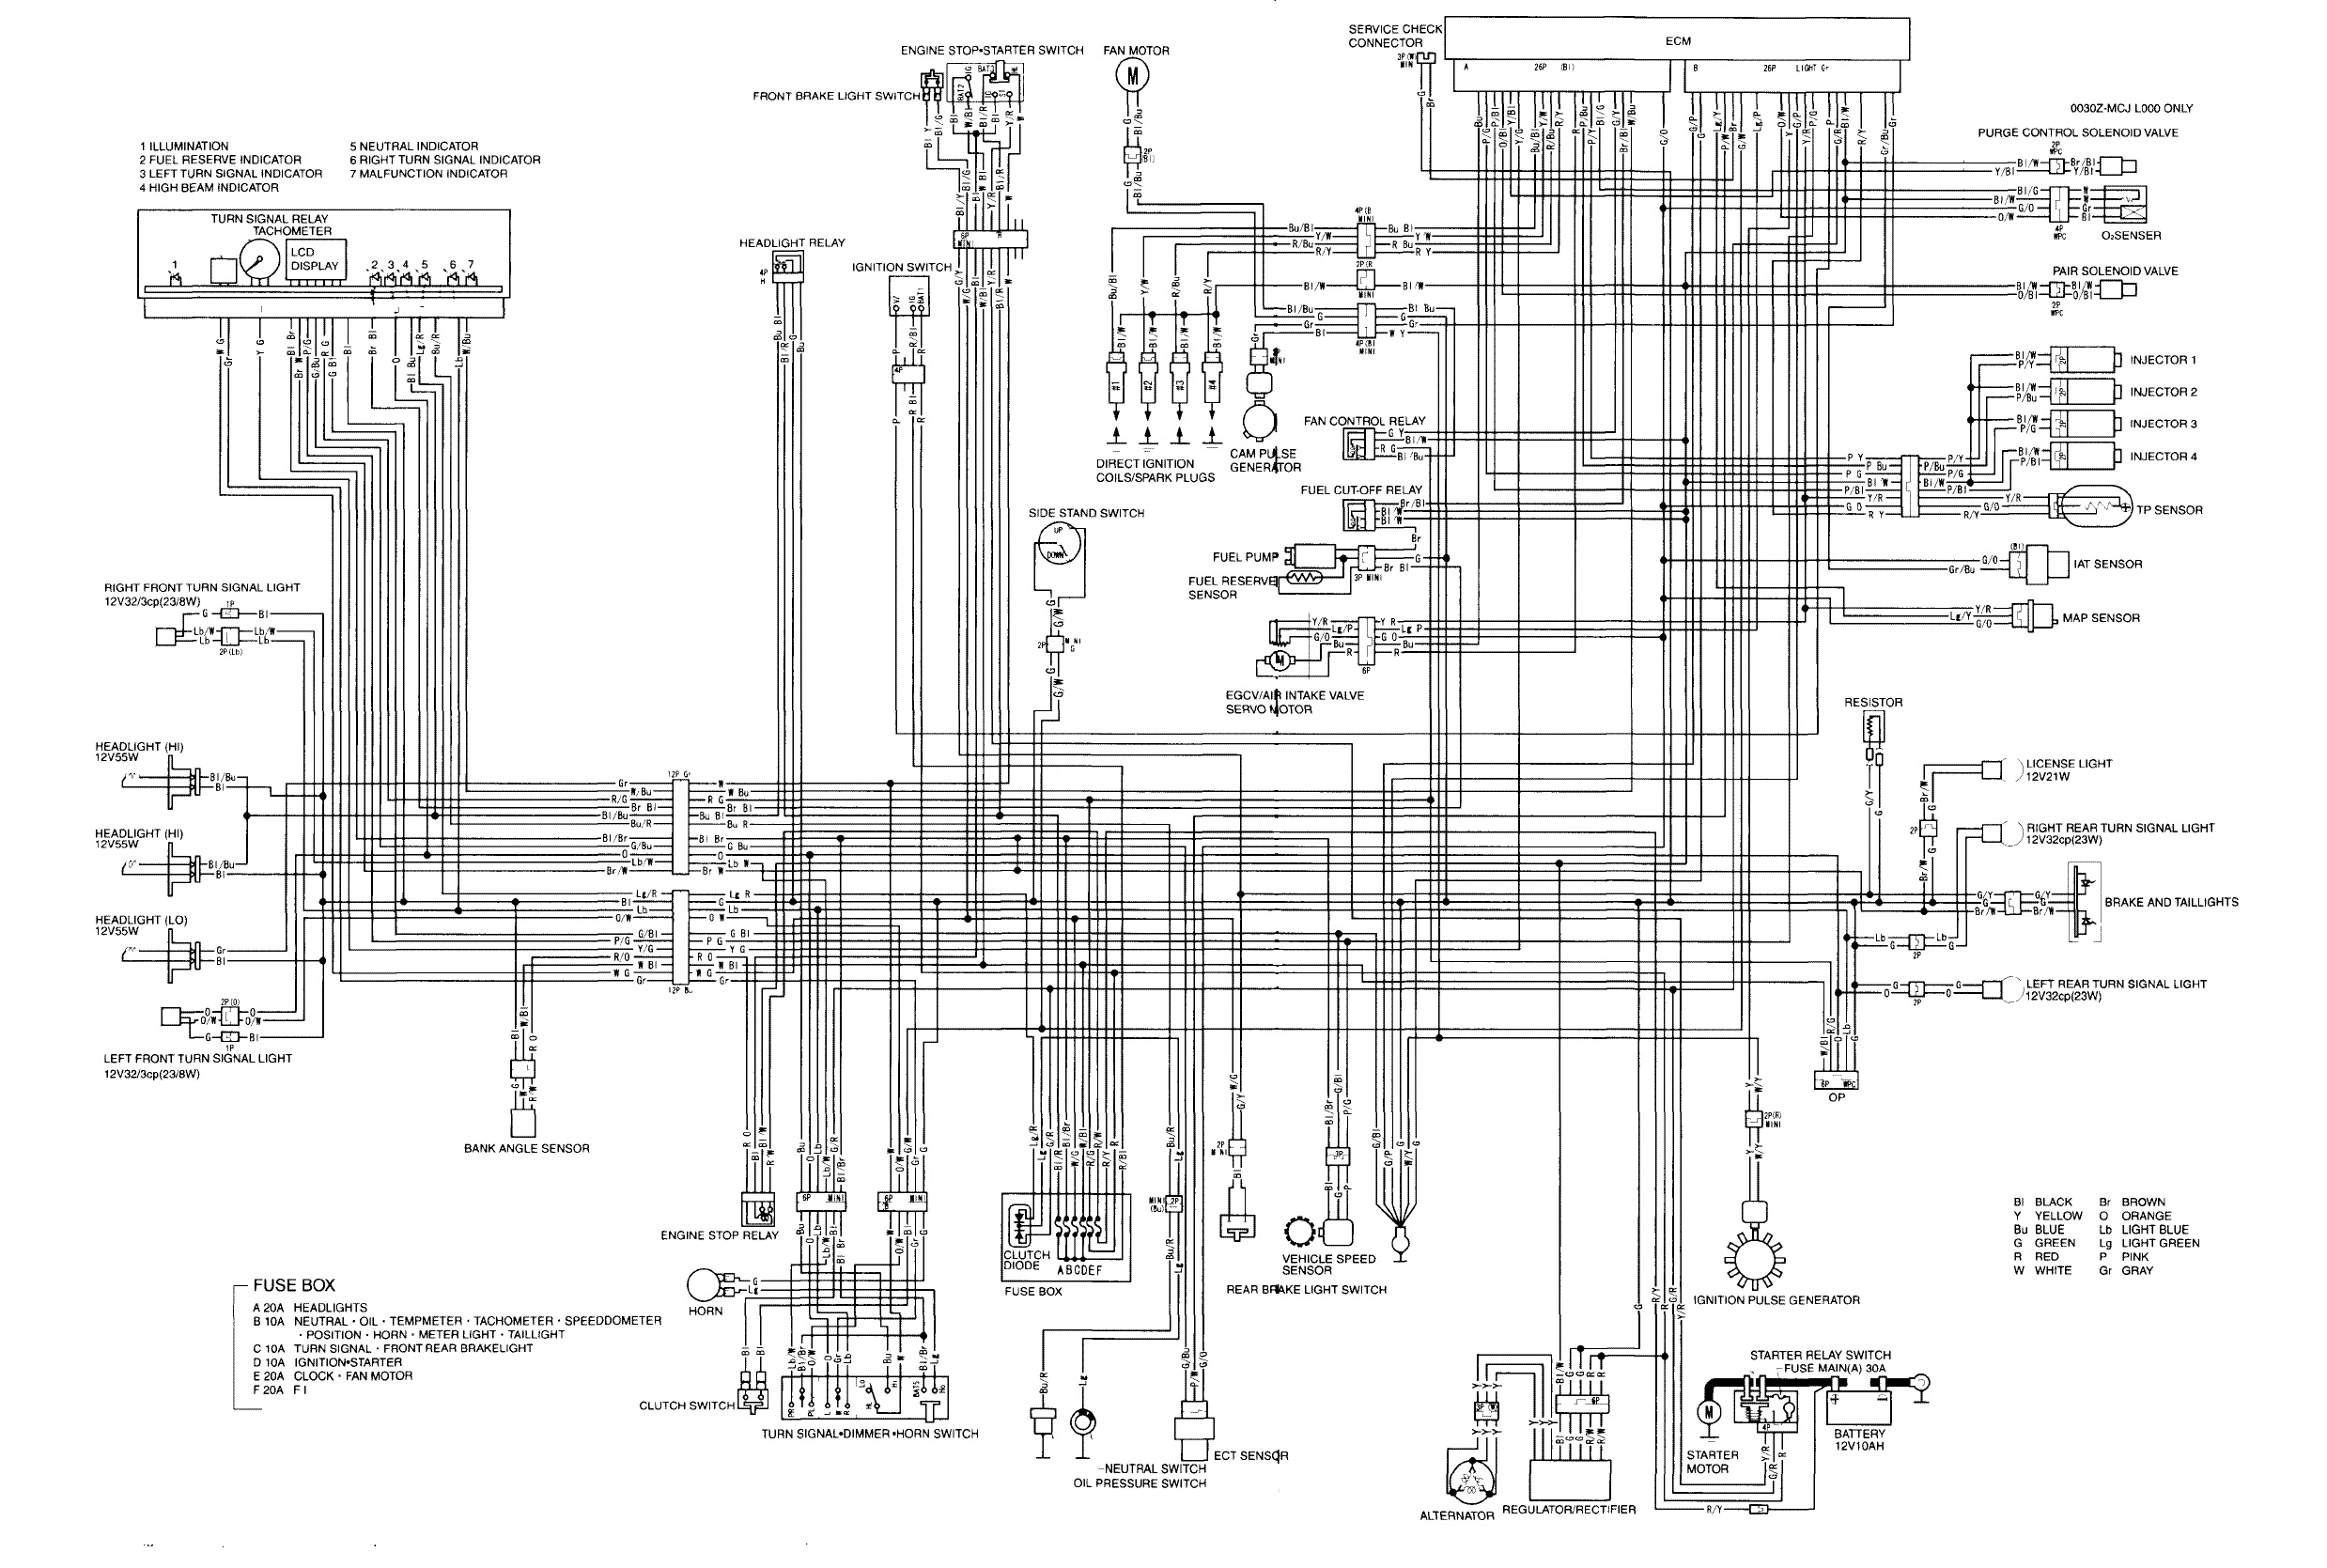 hondacbr954?resize\=665%2C448 wiring schematic diagram for a 2006 cbr600rr wire diagram 2006 2006 cbr600rr wiring diagram at money-cpm.com